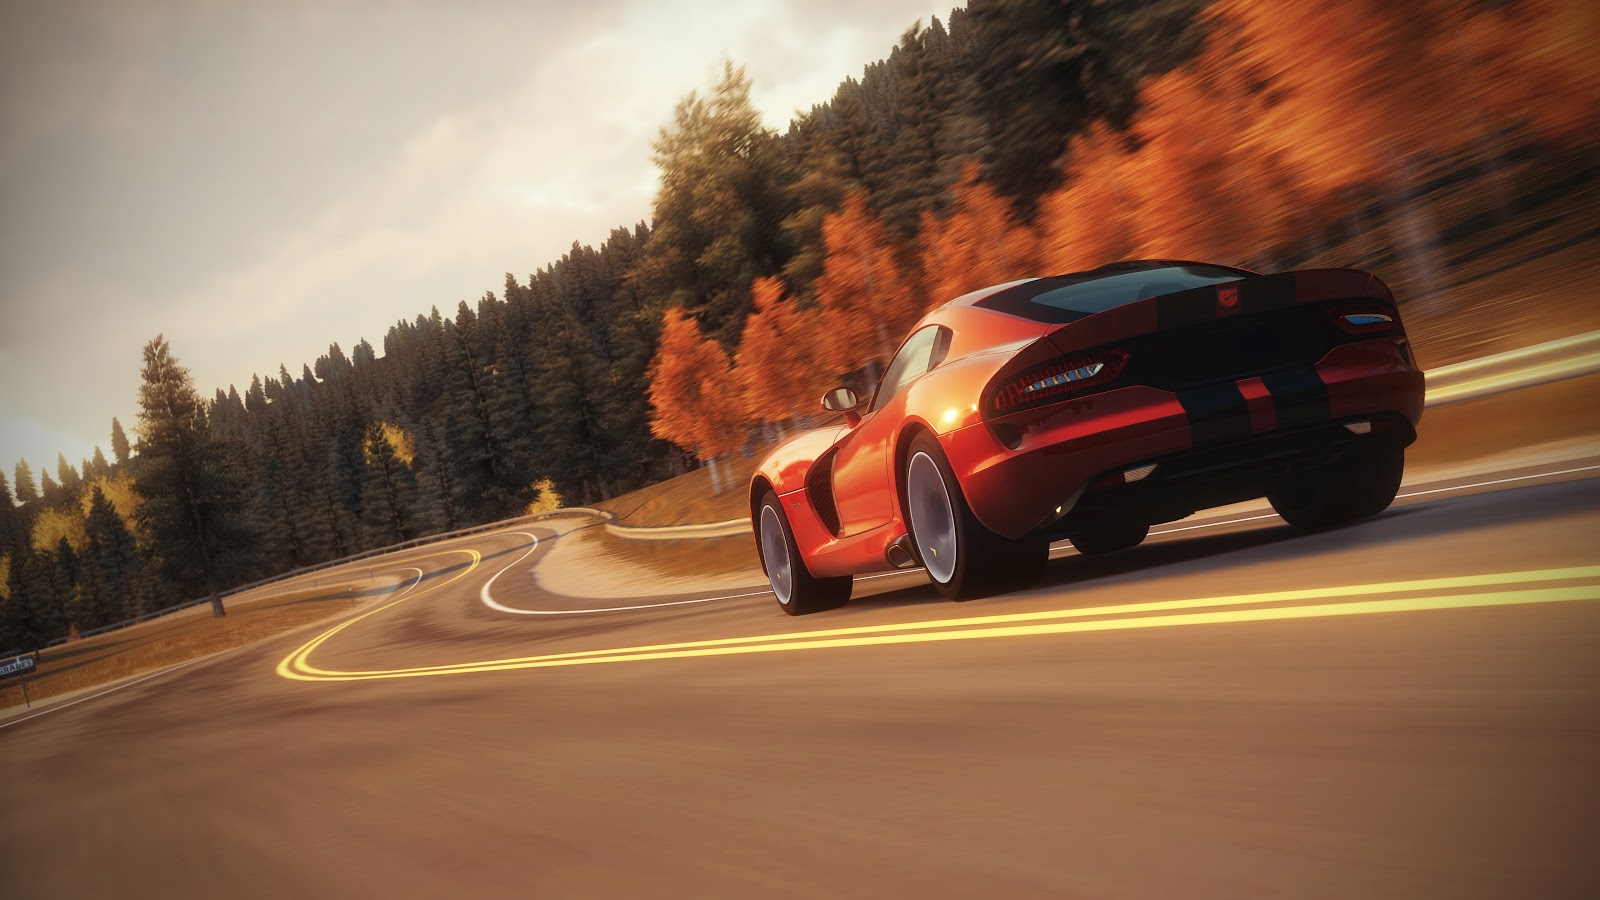 Forza Horizon HD & Widescreen Wallpaper 0.801543669372